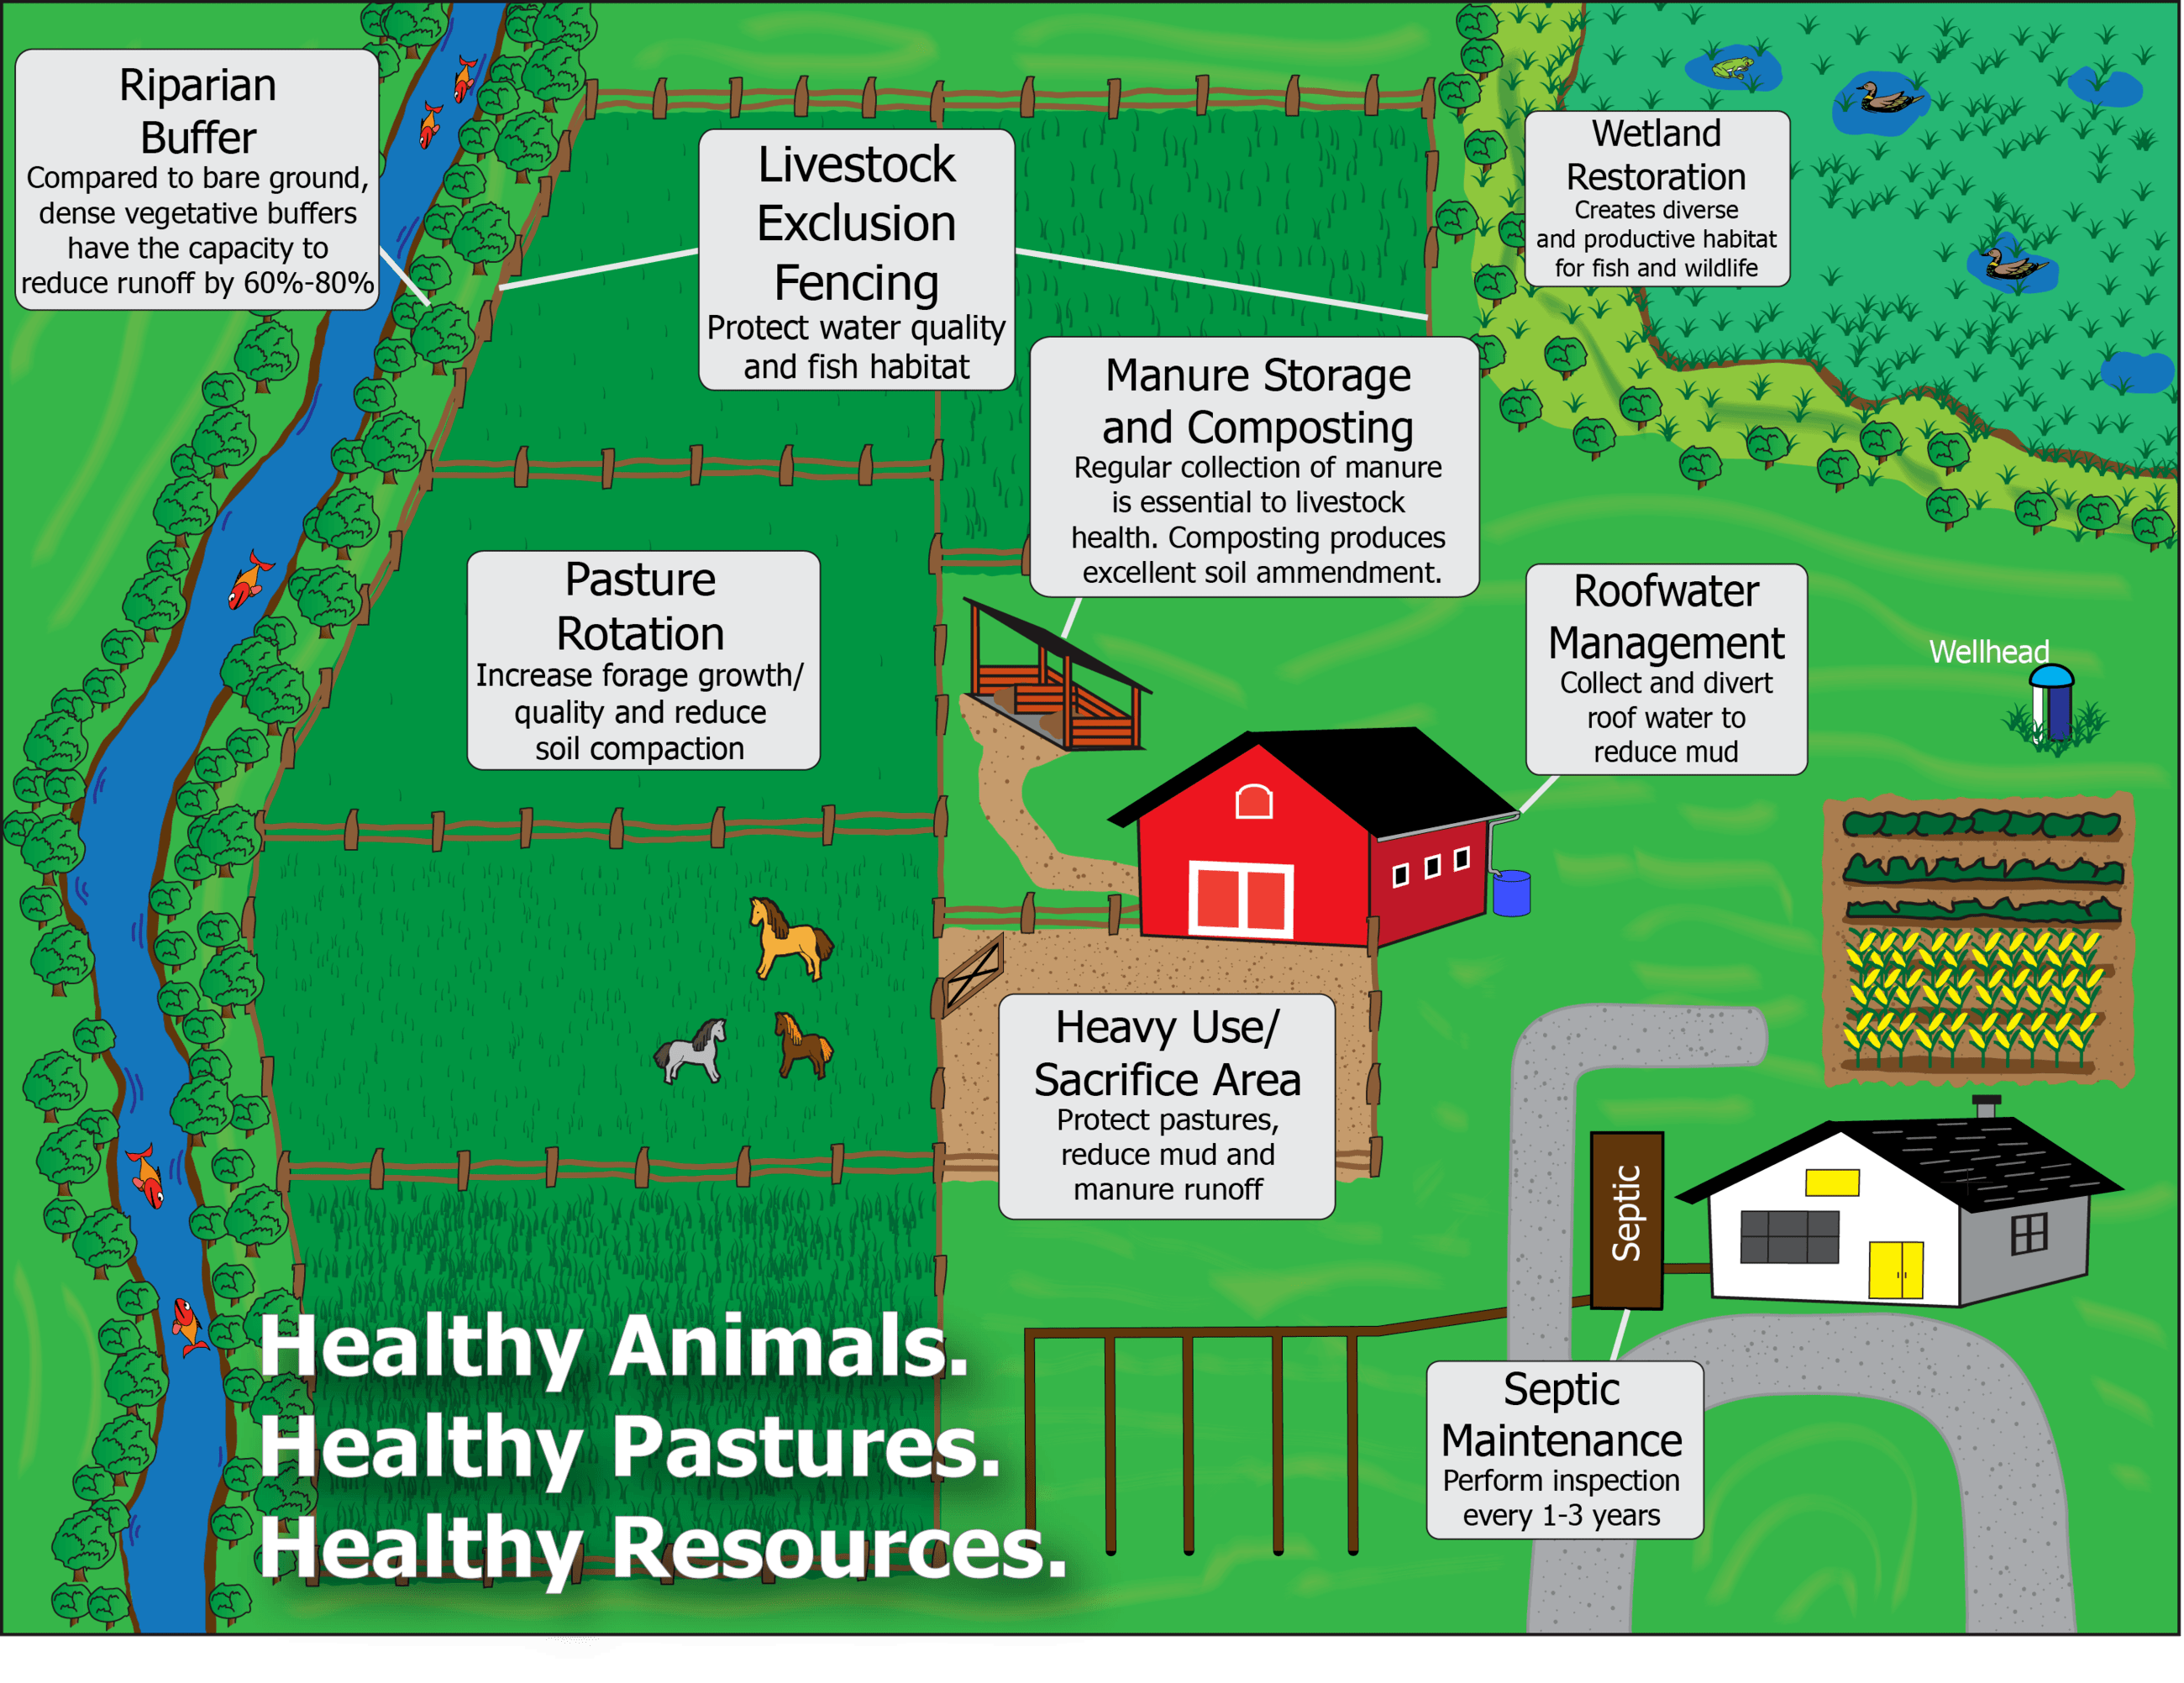 SmallFarmInfoGraphic_Healthy_LargerText